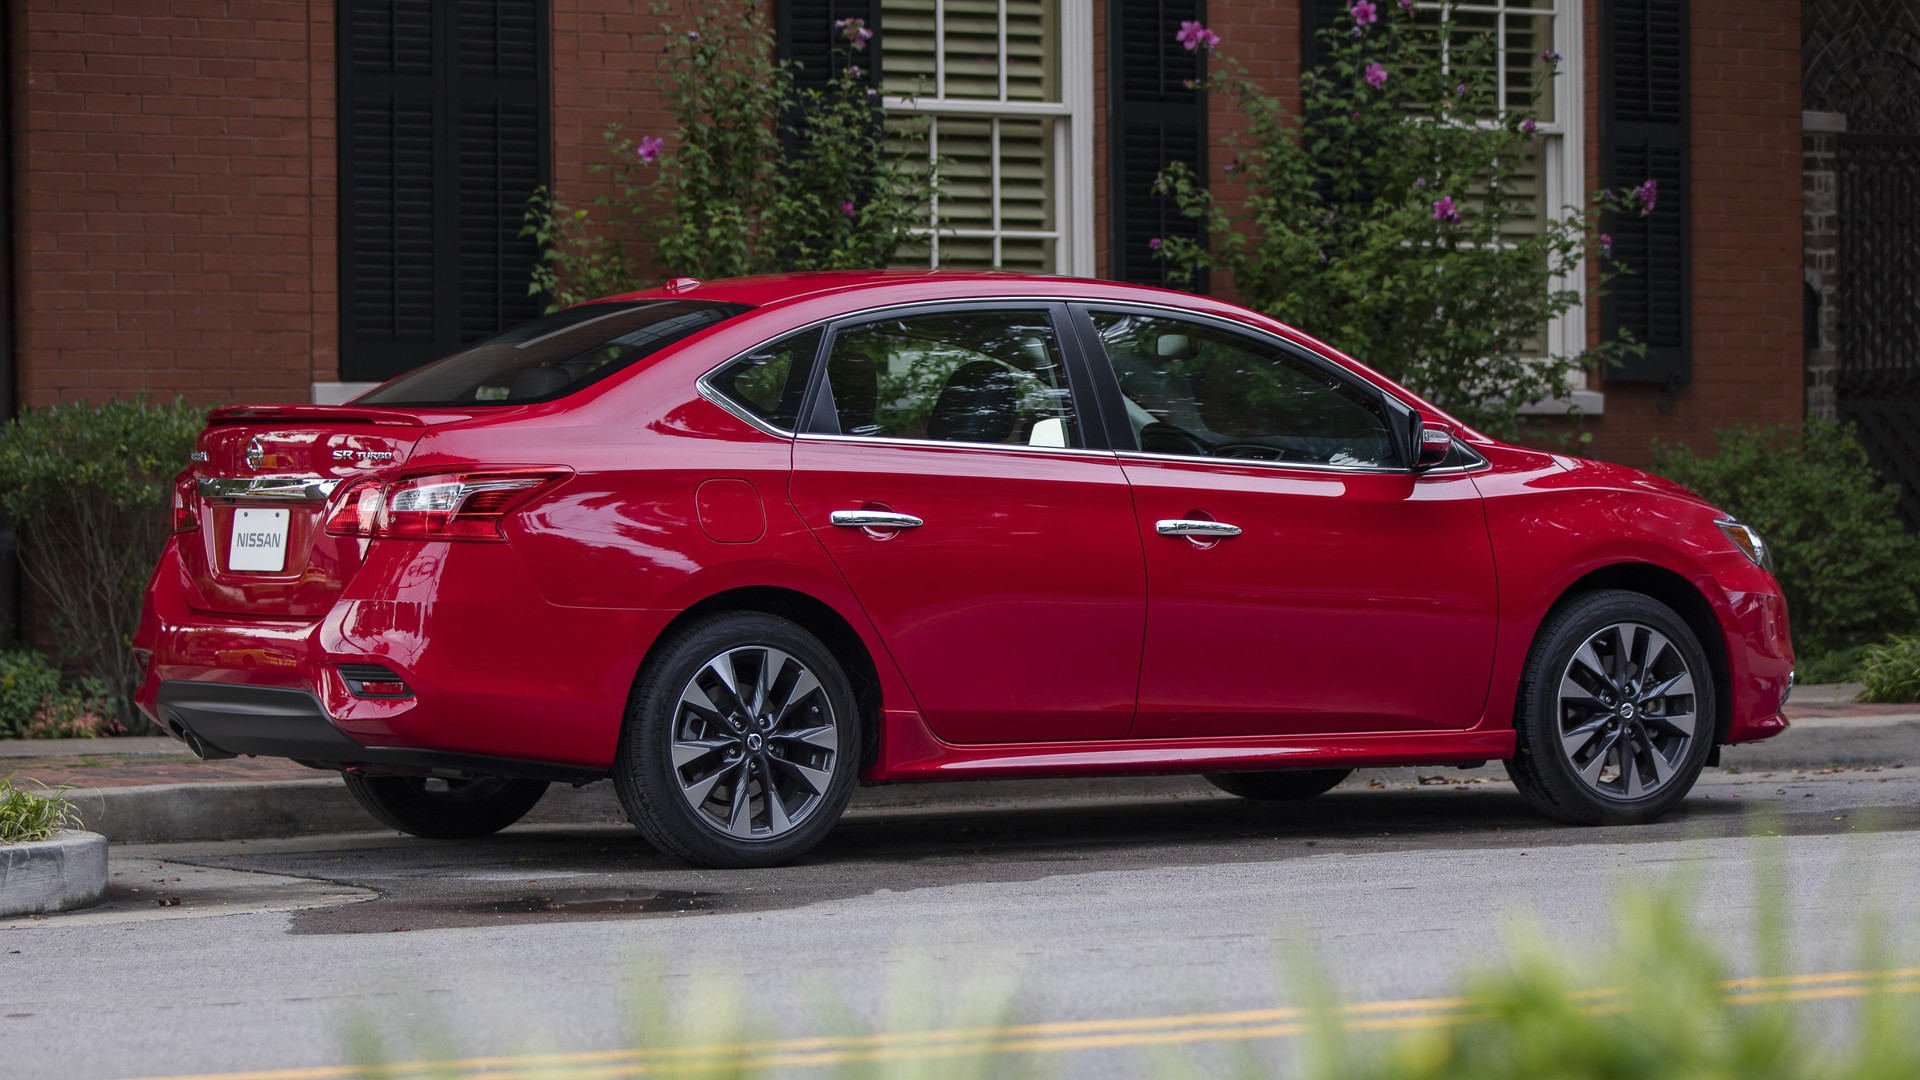 Nissan Sentra Sr Turbo Revealed With Hp And Sporty Design on Nissan Murano Cooling System